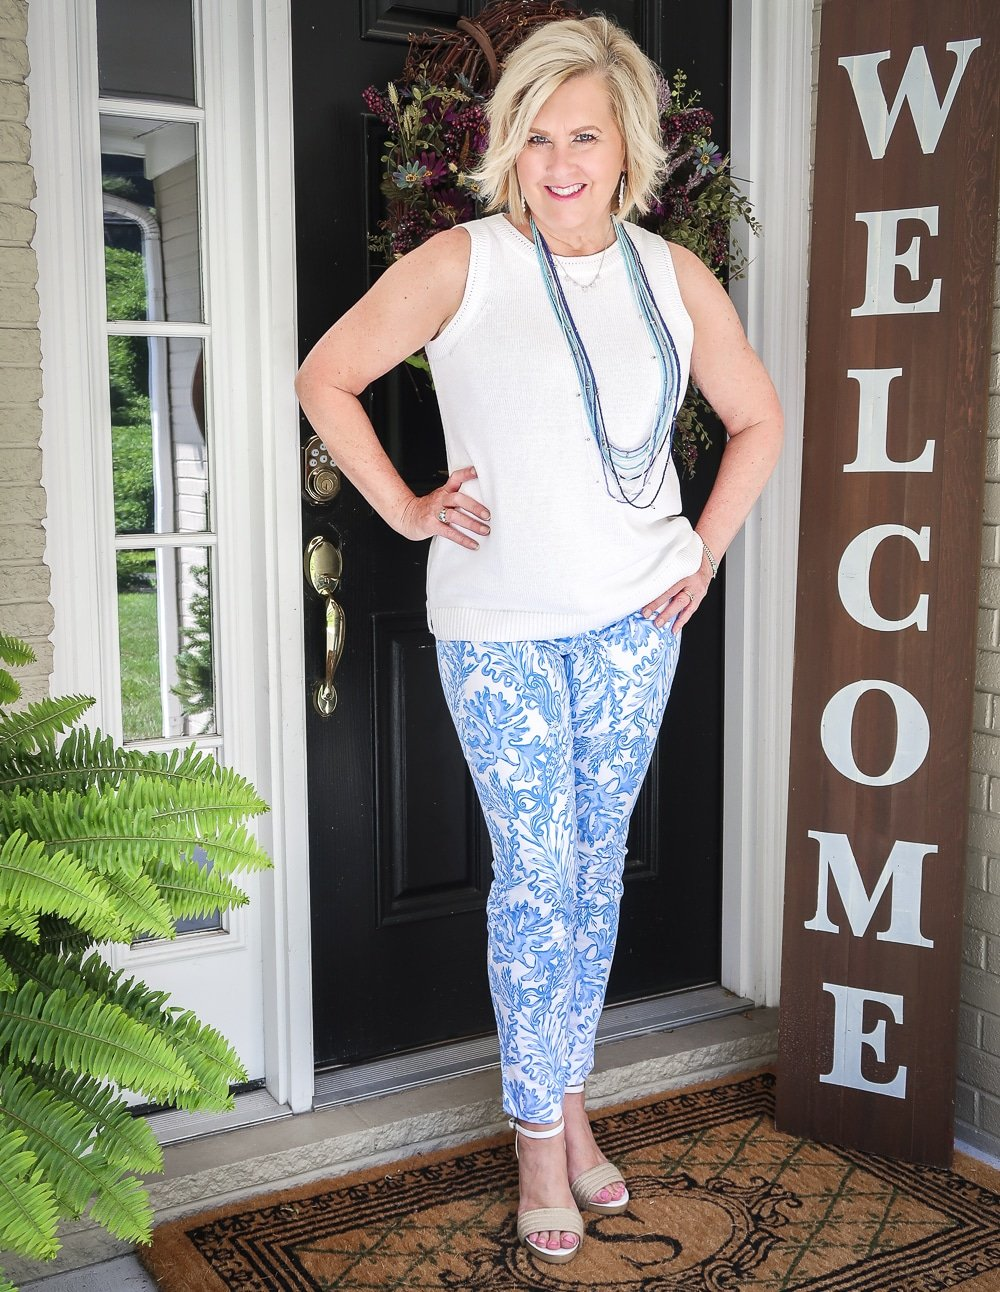 Fashion Blogger 50 Is Not Old is wearing a classic blue and white outfit. A white sweater, blue and white printed ankle pants from Lilly Pulitzer